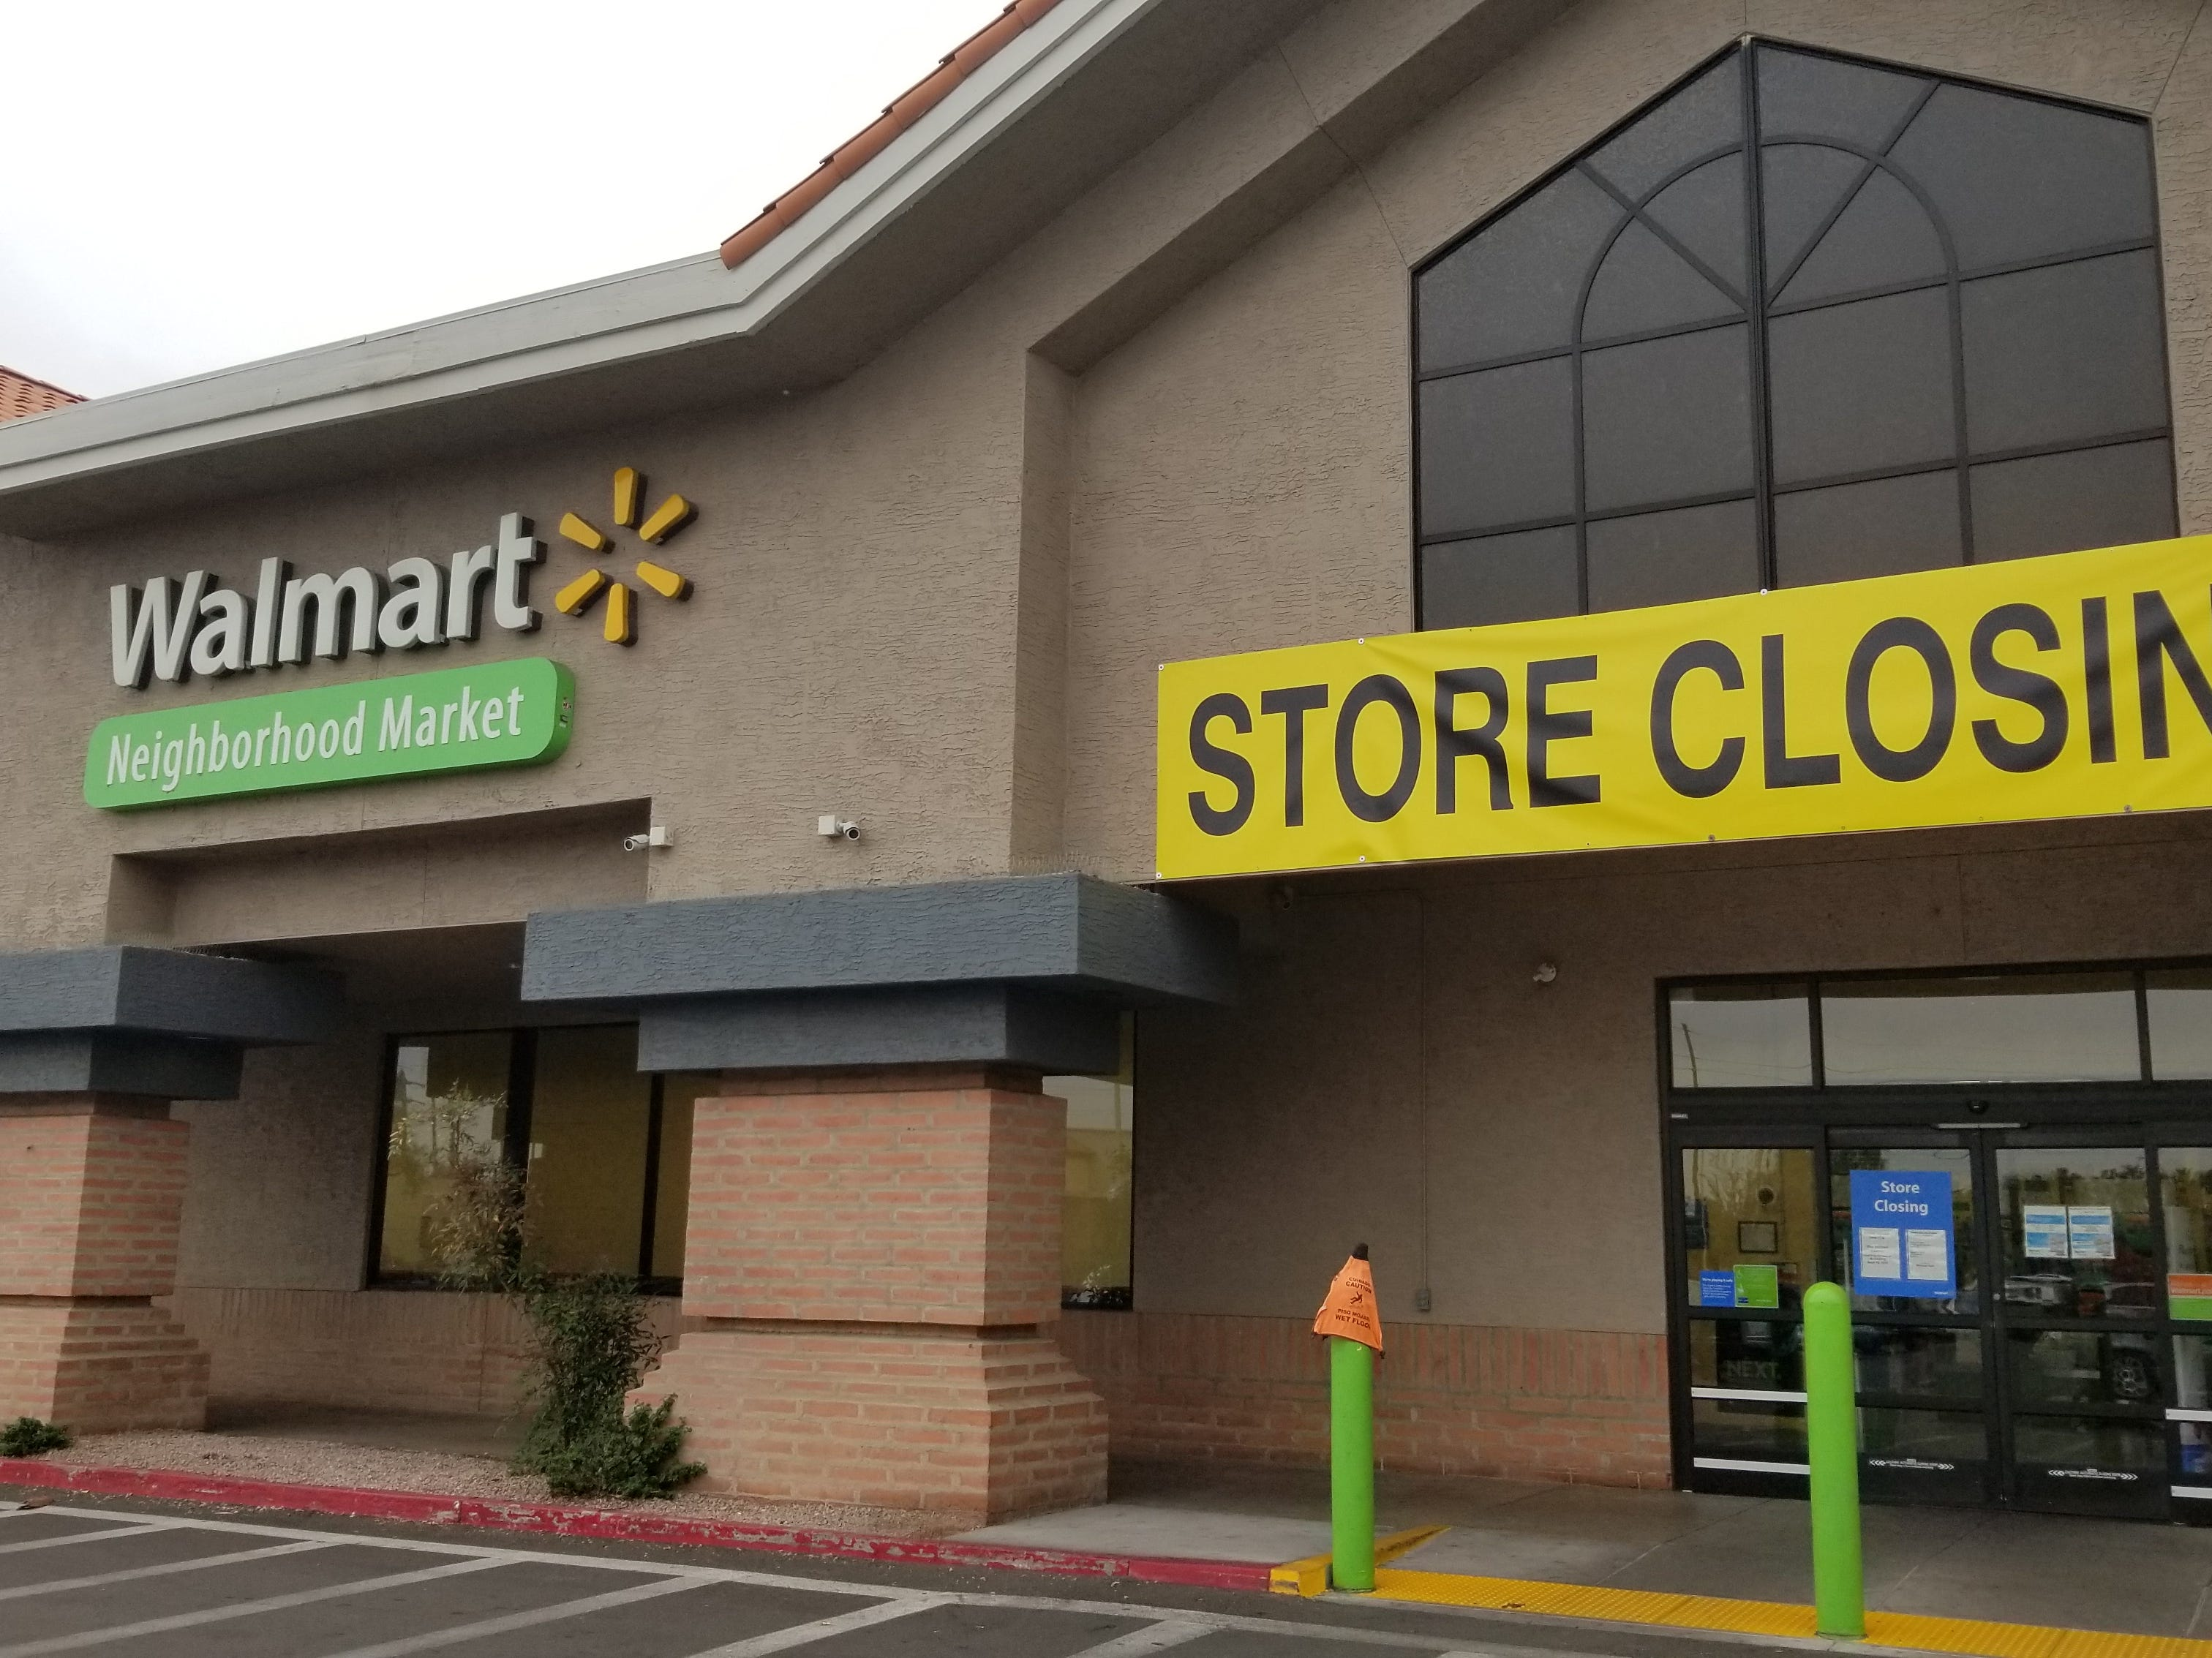 The Walmart Neighborhood Market concept was first launched in 1998, and the location at Chandler Boulevard and Kyrene Road opened in August 2013. It is closing April 19.